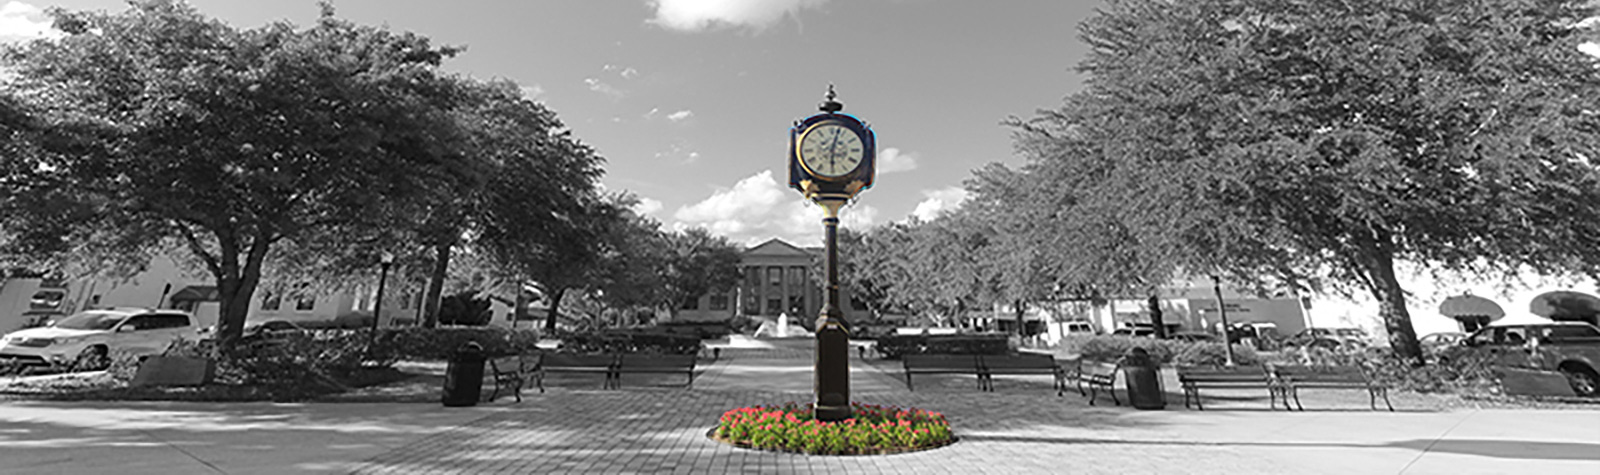 clock in front of Leesburg City Hall